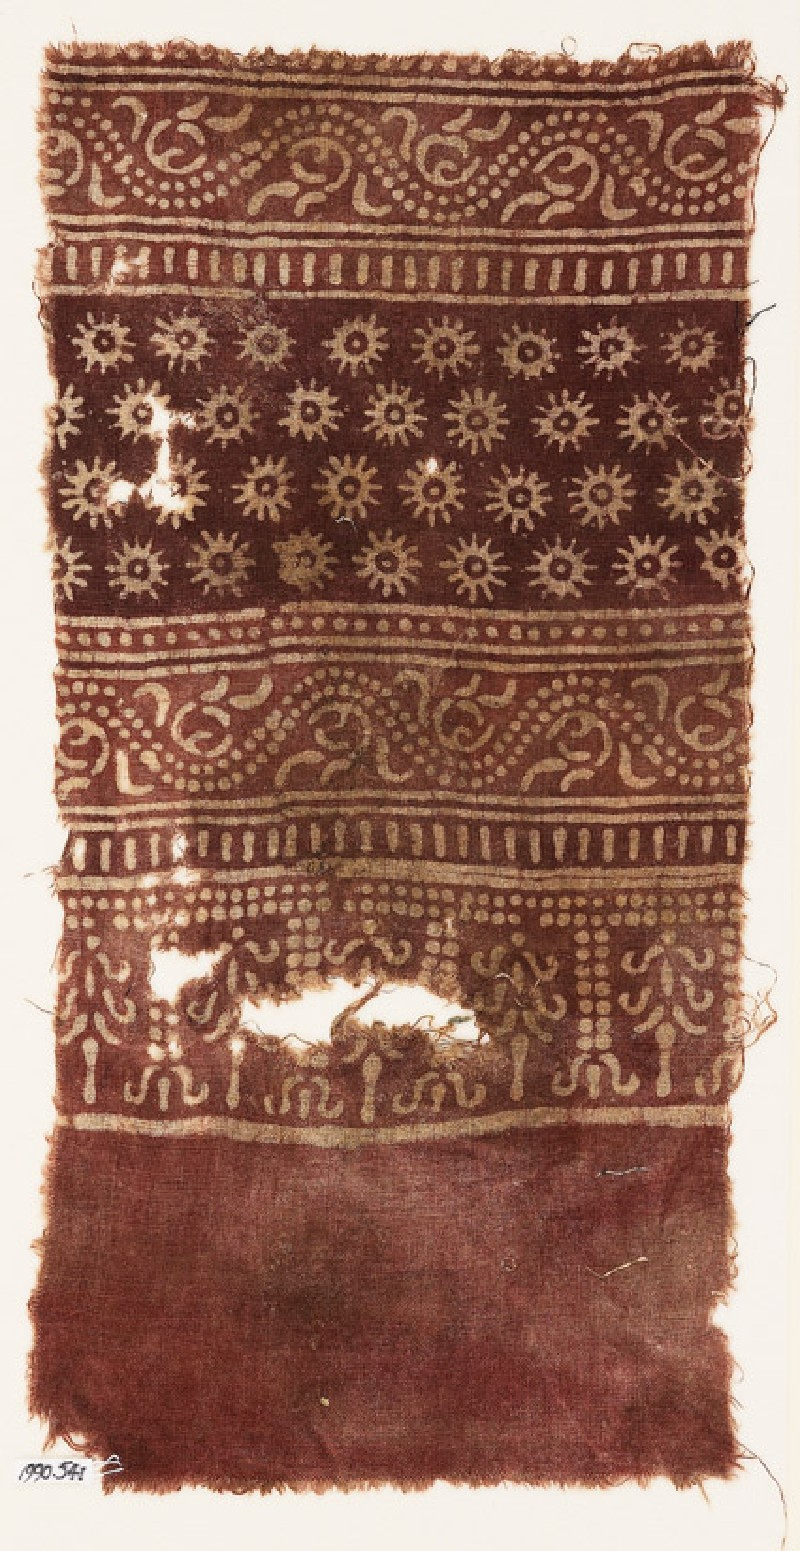 Textile fragment with bands of dotted vines, tendrils, rosettes, and stylized trees (EA1990.541, front            )